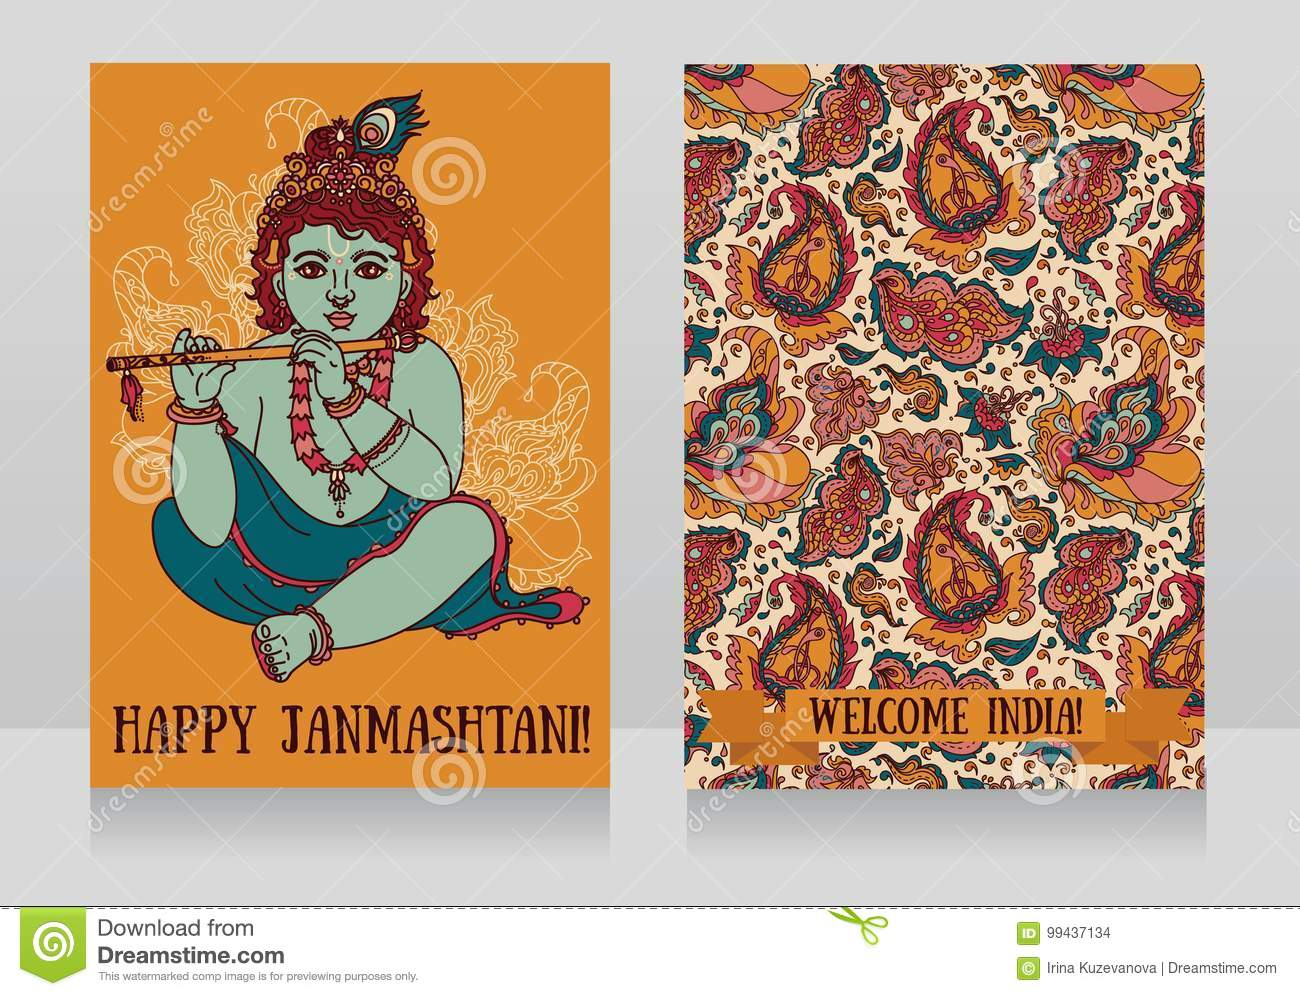 Little Krishna With The Flute On The Greeting Cards For Happy